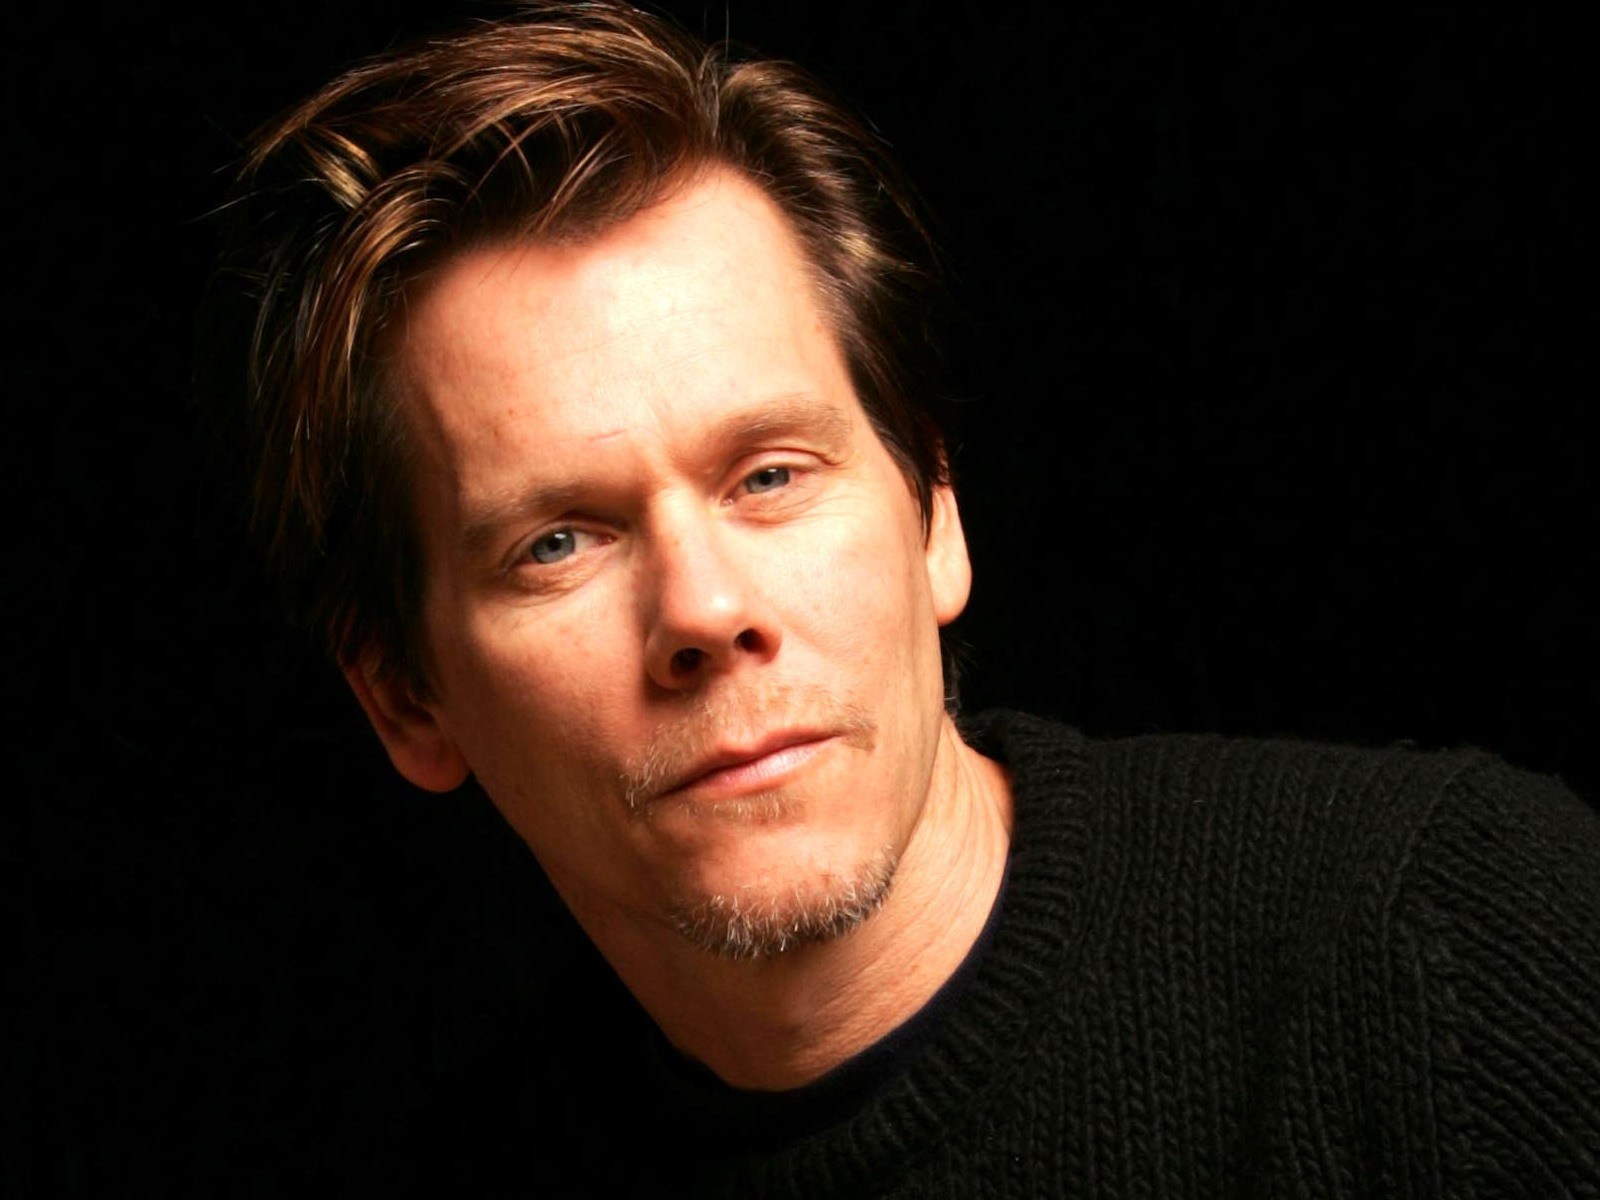 1600x1200 - Kevin Bacon Wallpapers 28